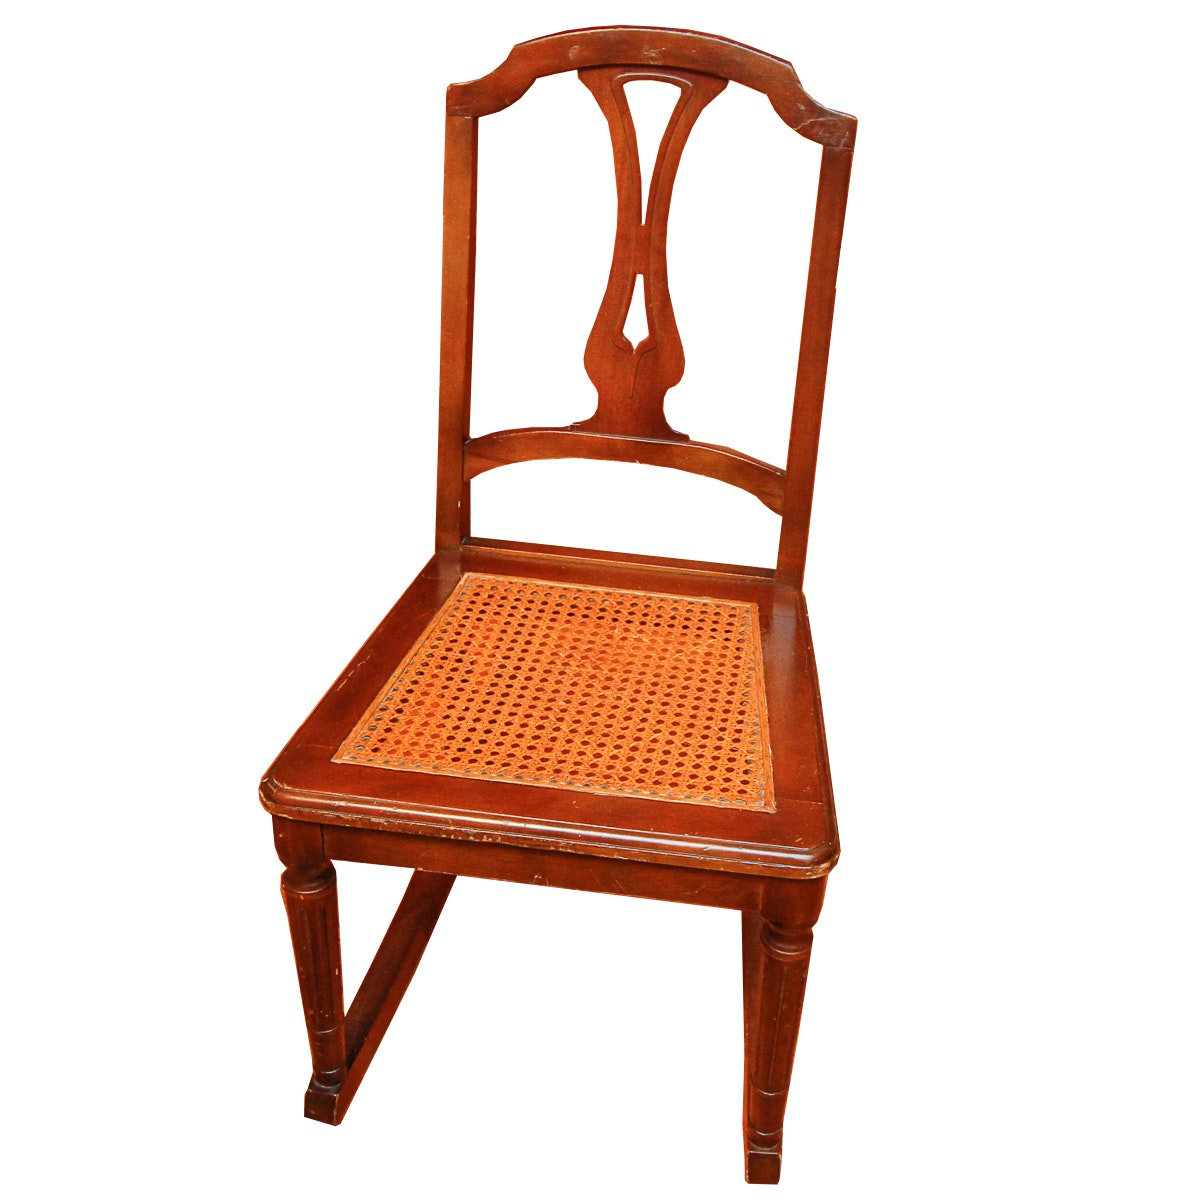 Vintage Cane Seat Rocking Chair